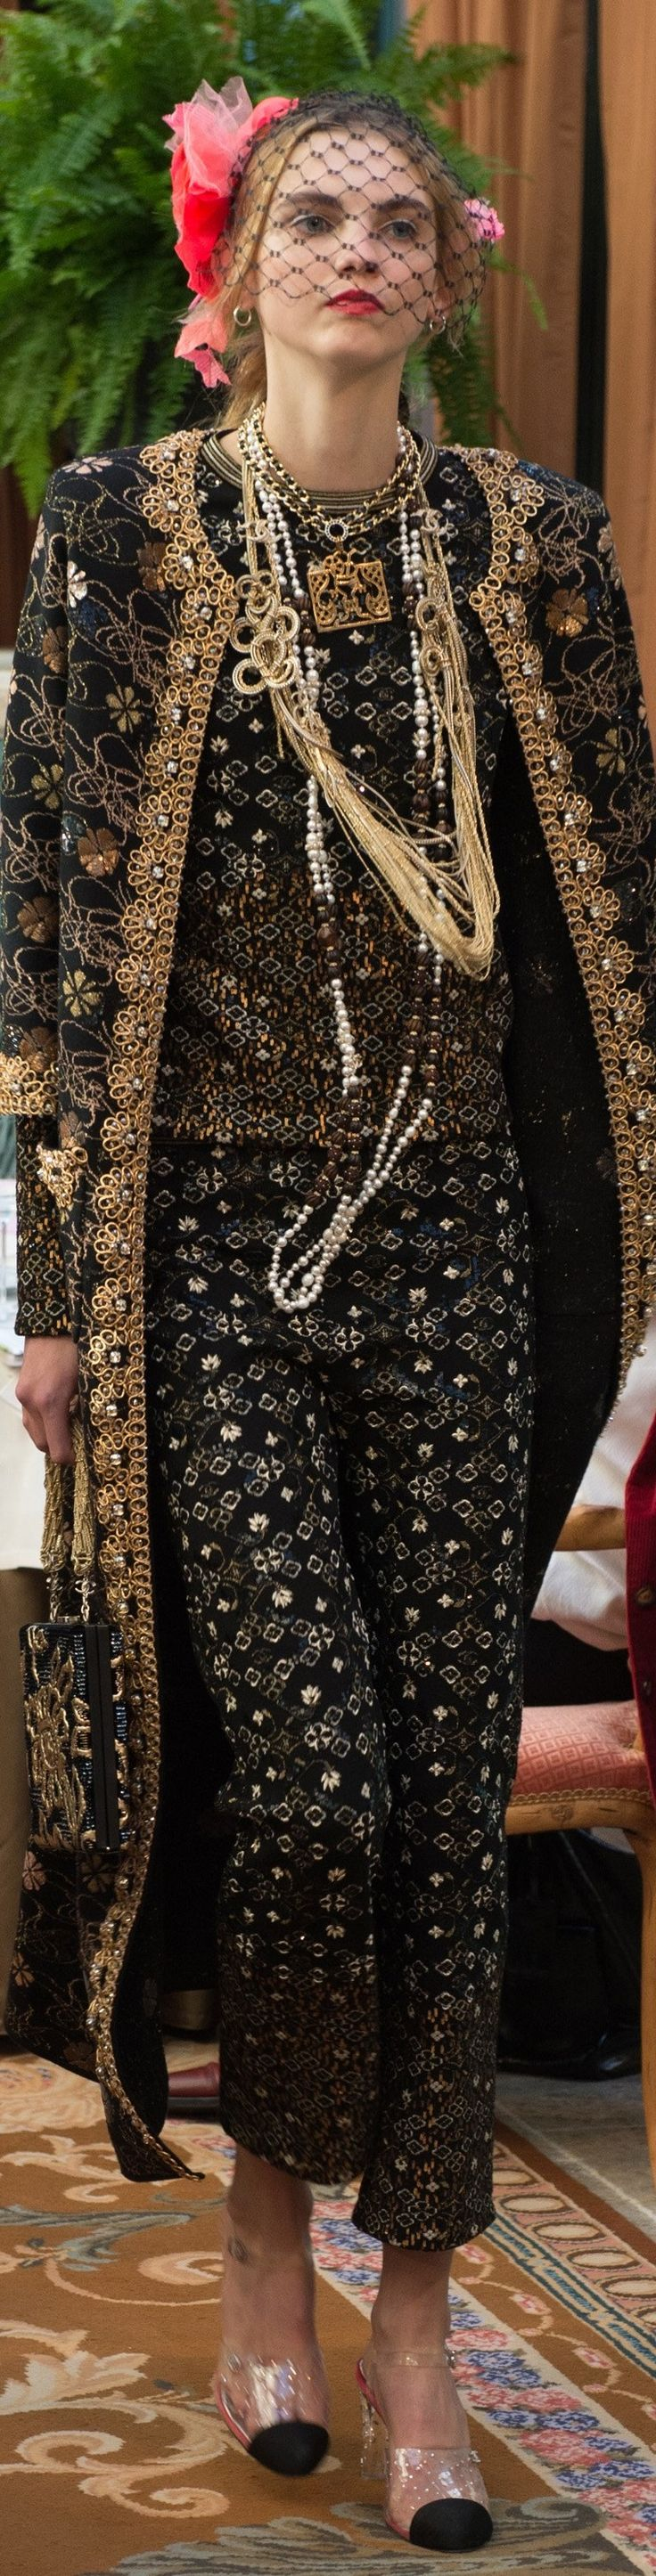 Chanel prefall 2017 show in Hotel Ritz Paris. Pin de Olga del Campo